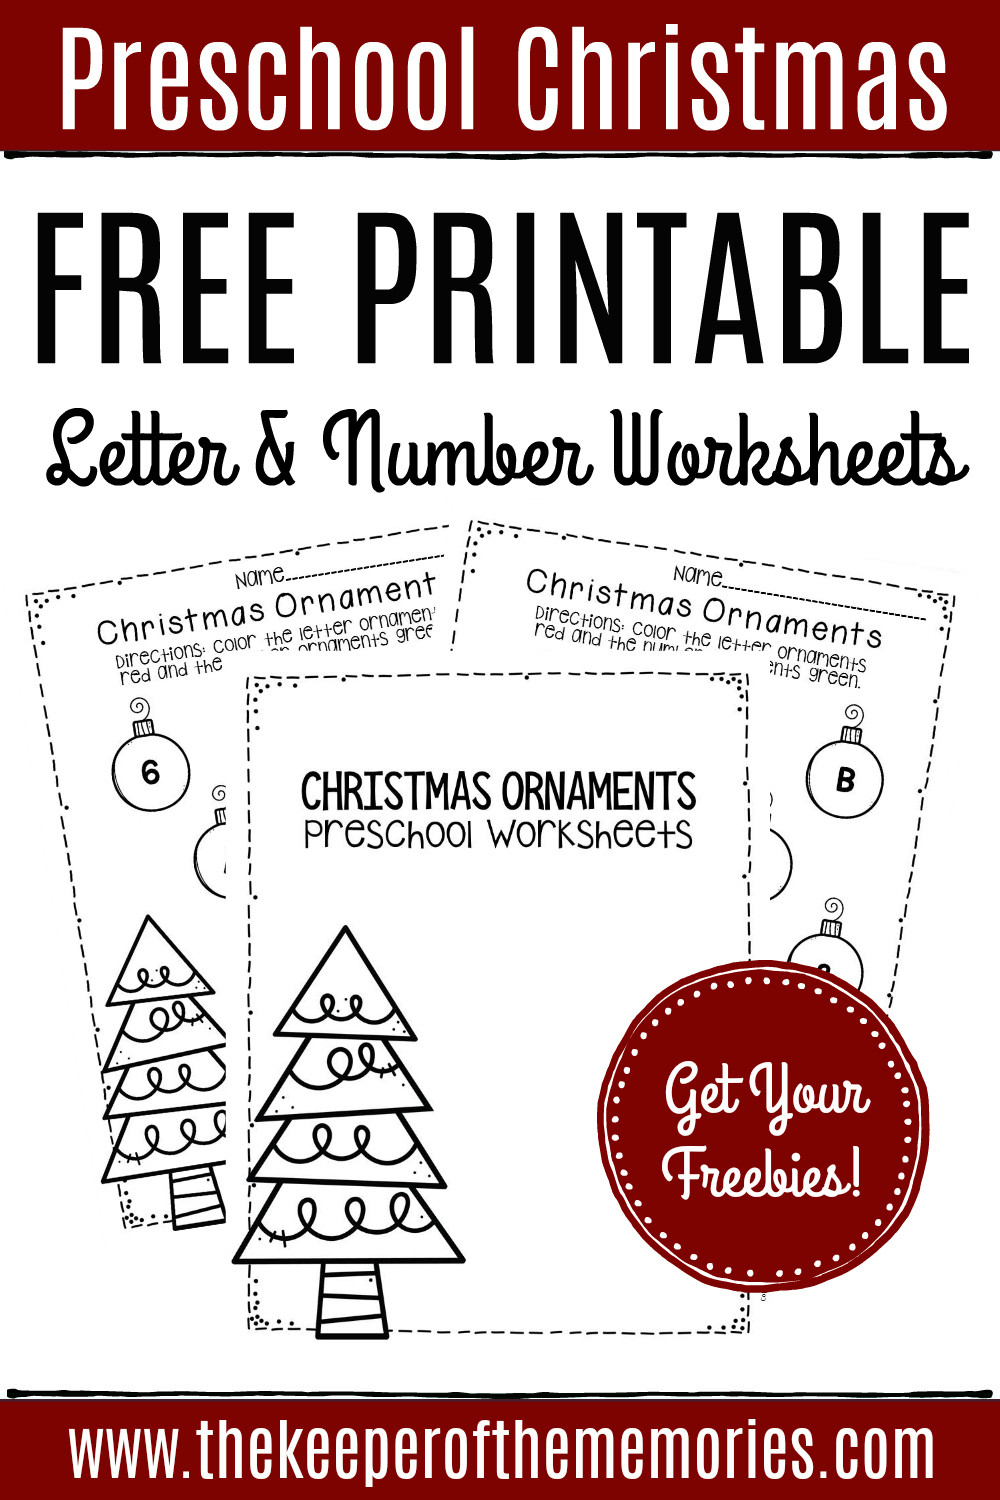 Christmas Worksheets for Preschoolers Free Printable Christmas ornaments Christmas Preschool